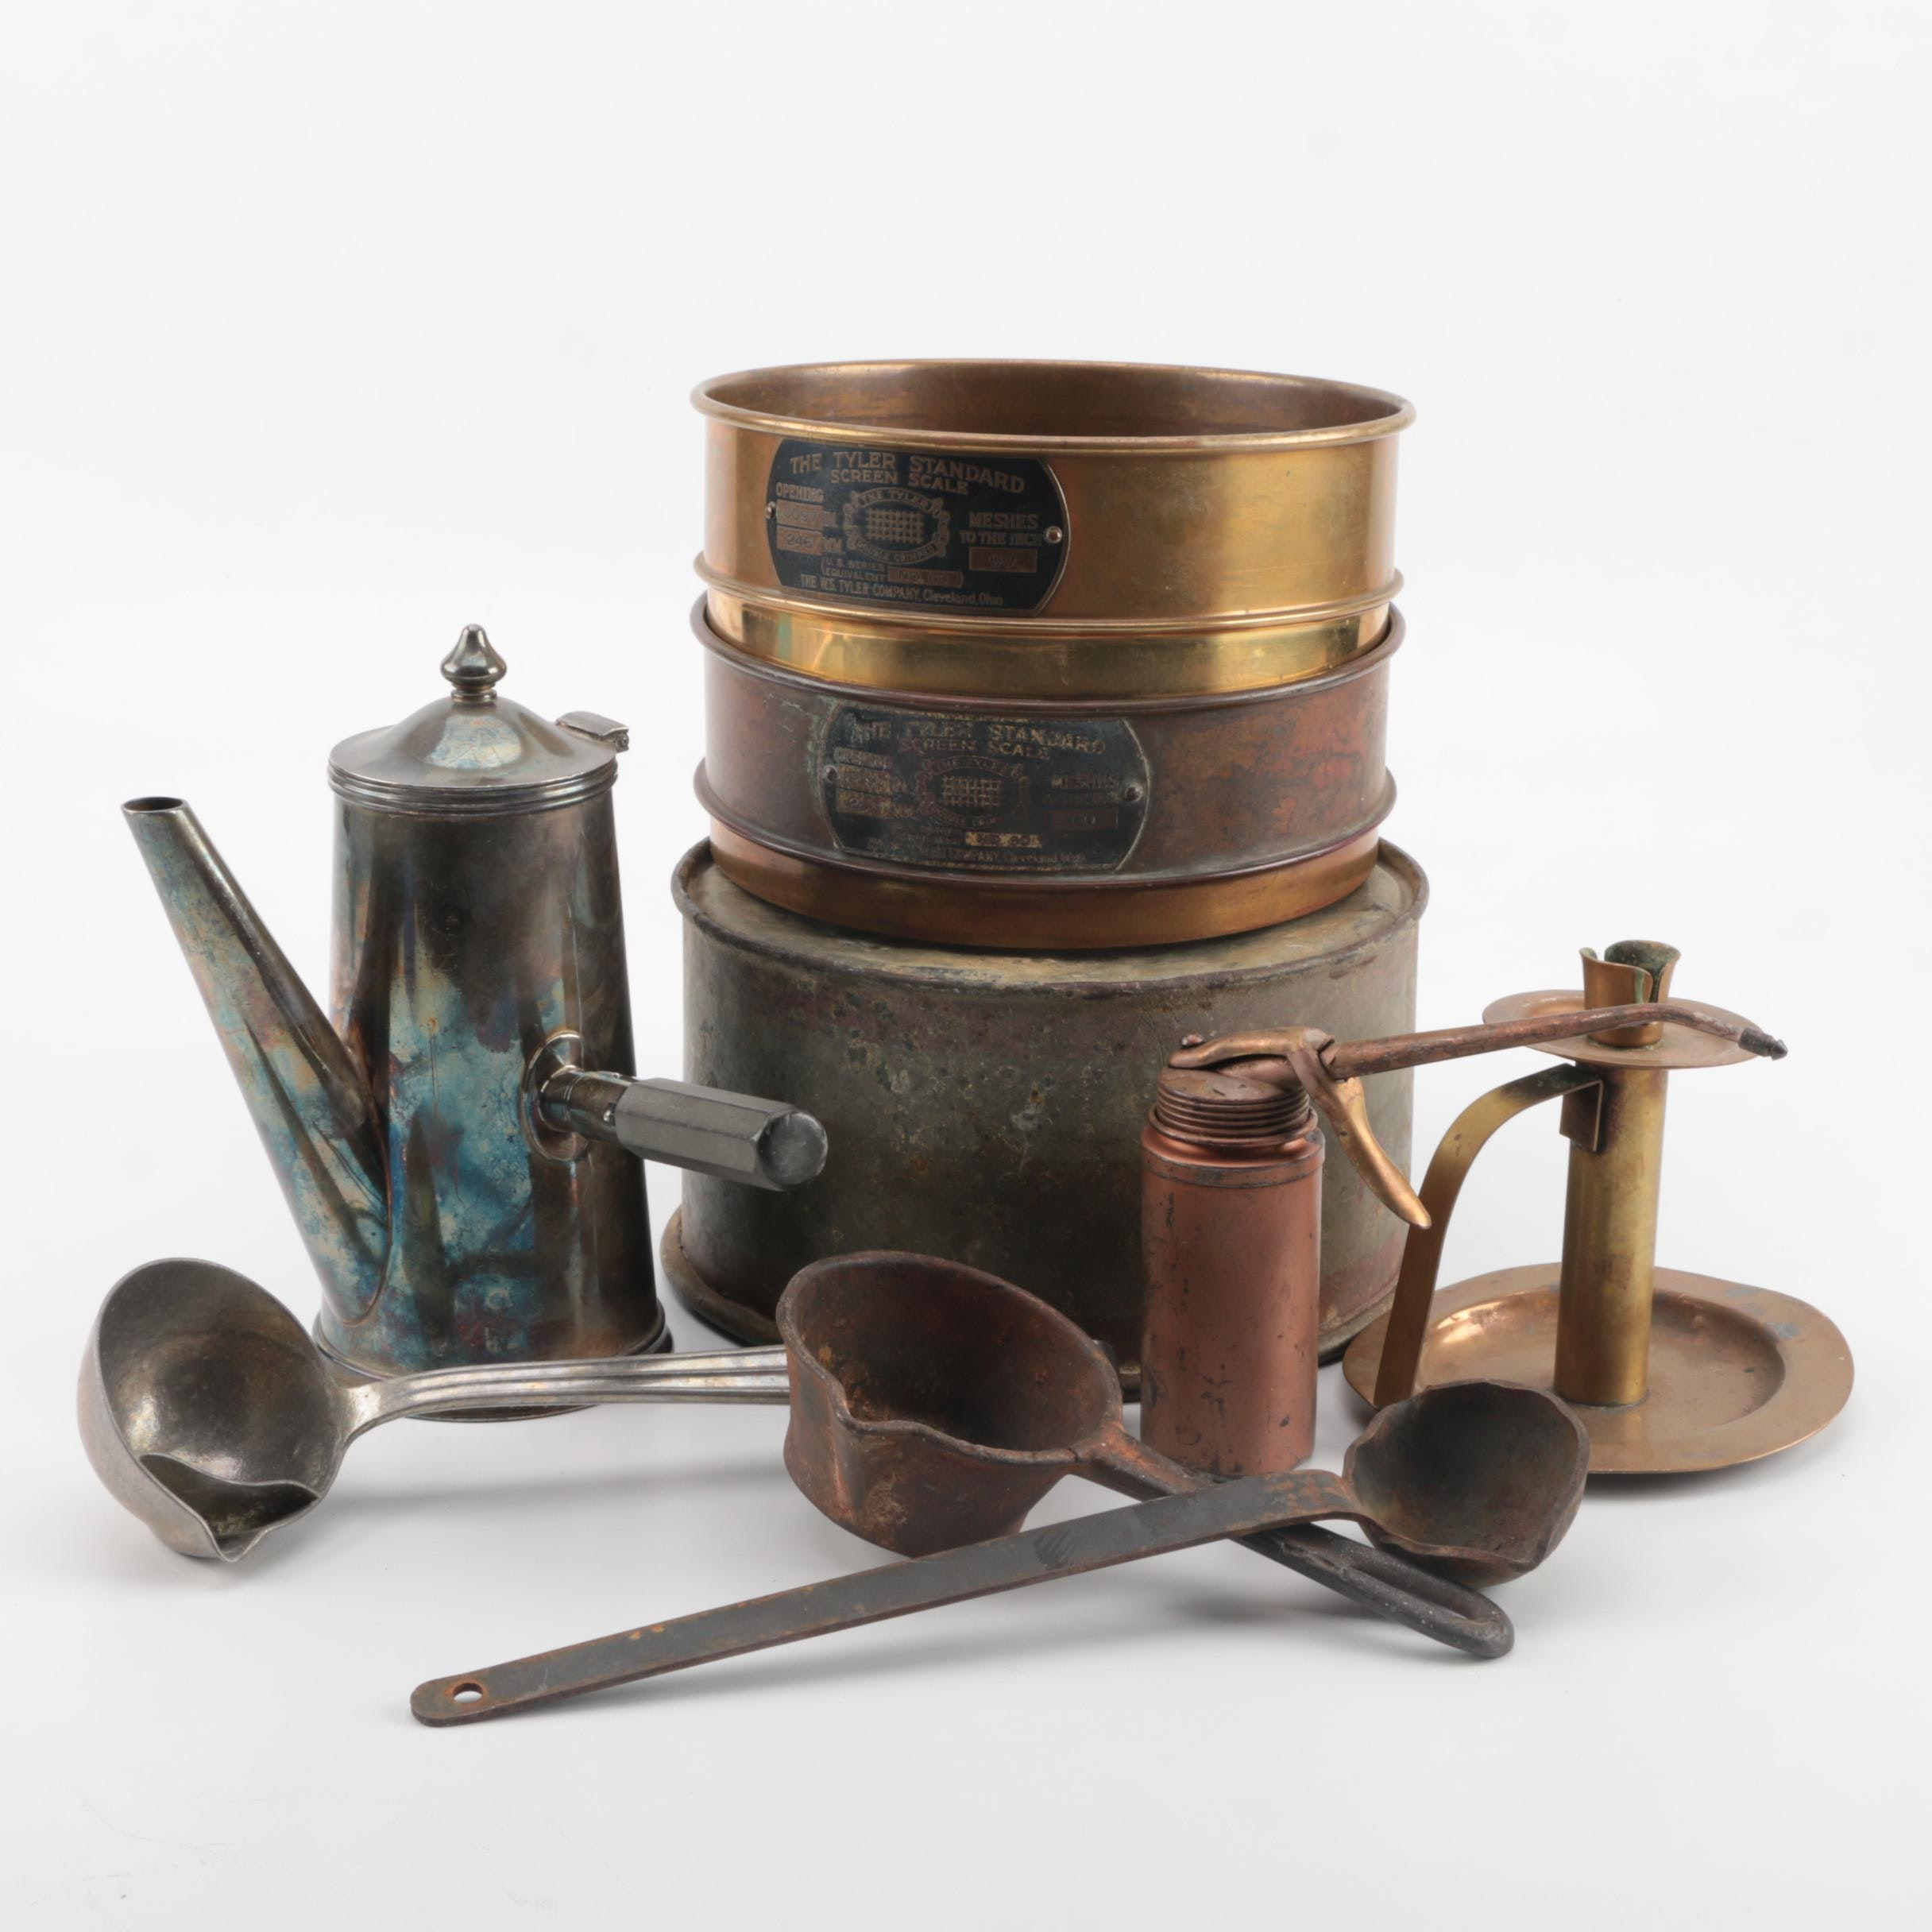 Assortment of Vintage Metal Tools and Kitchenware